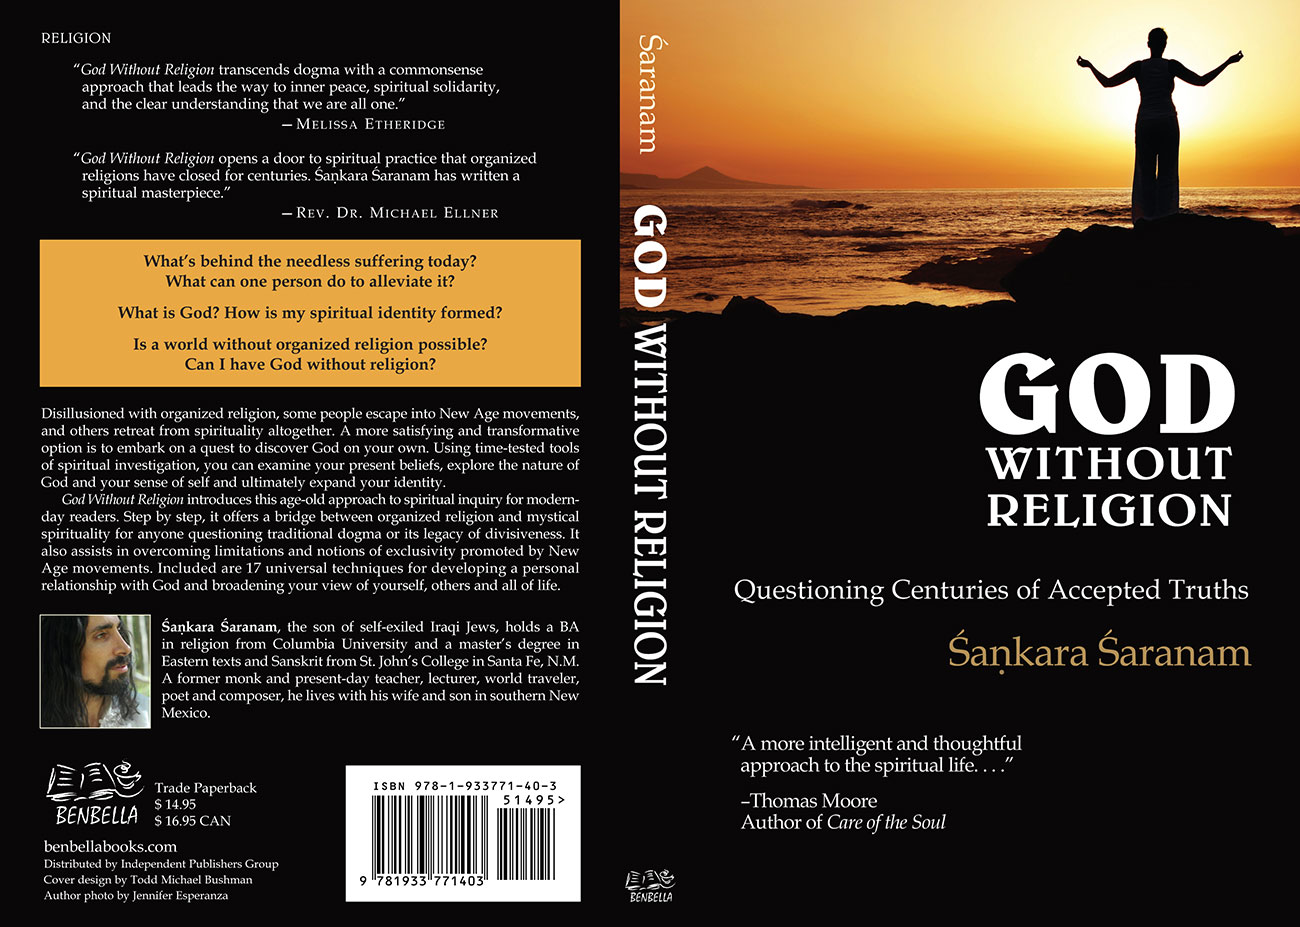 God Without Religion